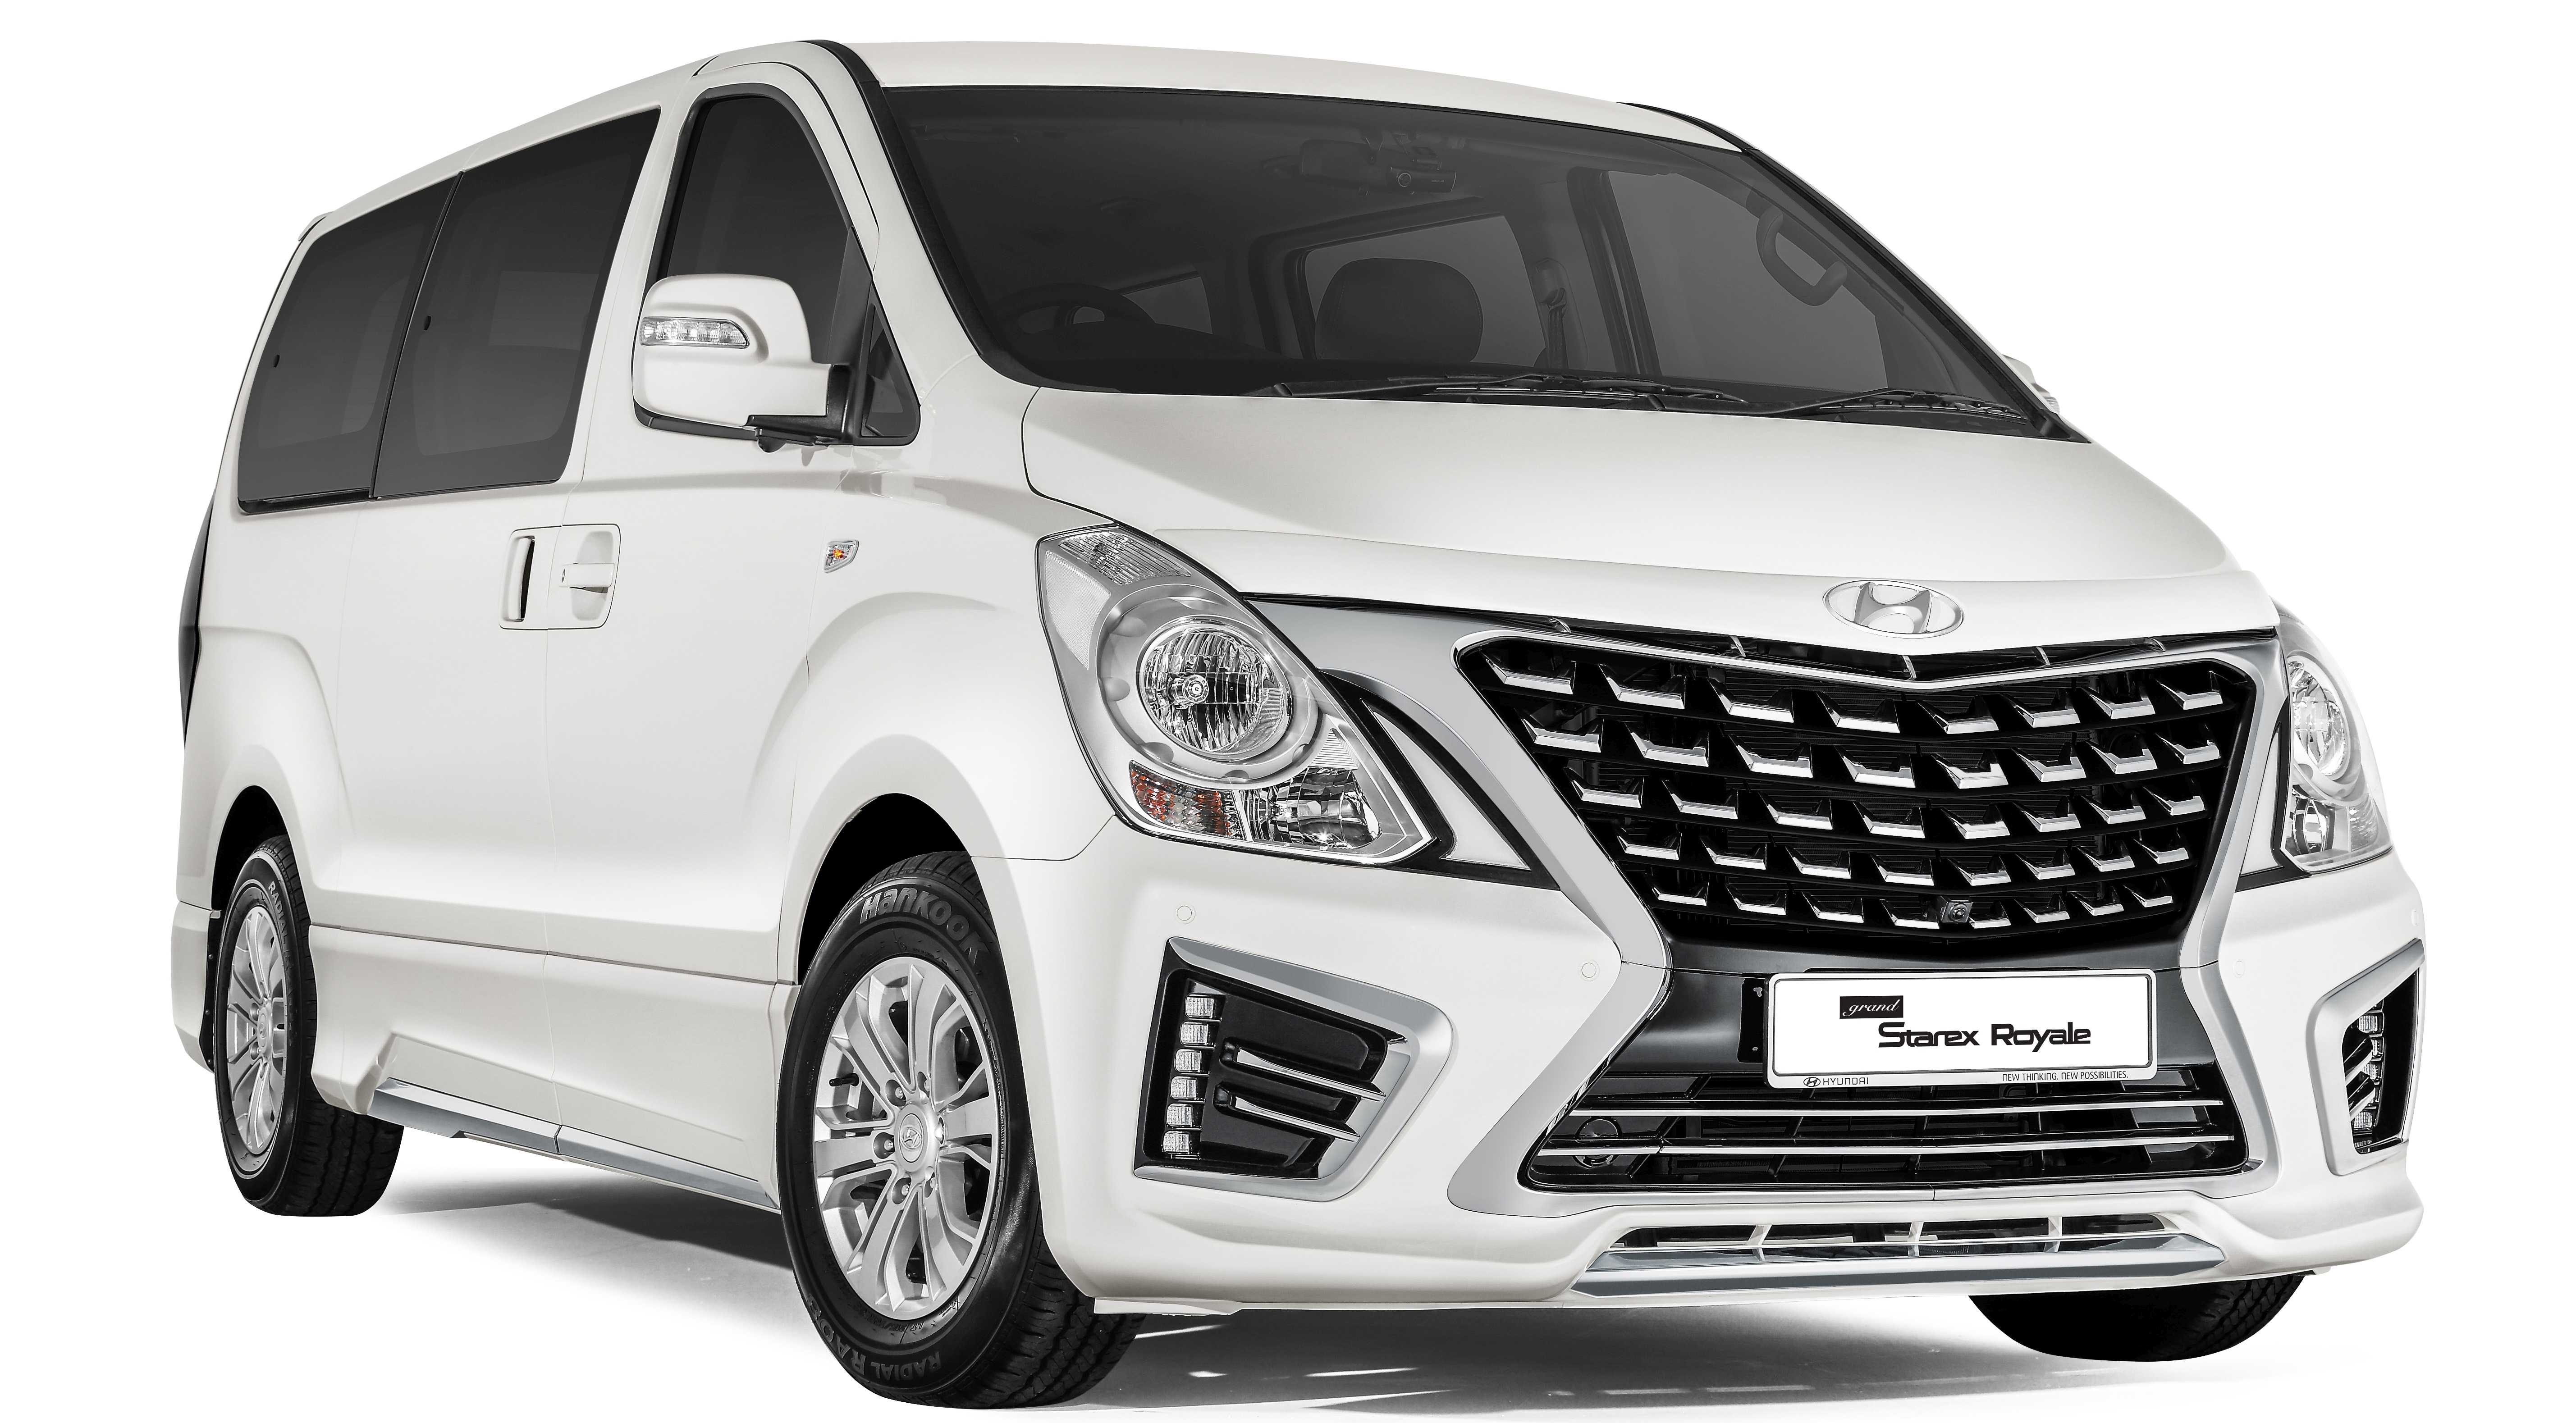 2017 Hyundai Grand Starex Royale facelift - RM169k